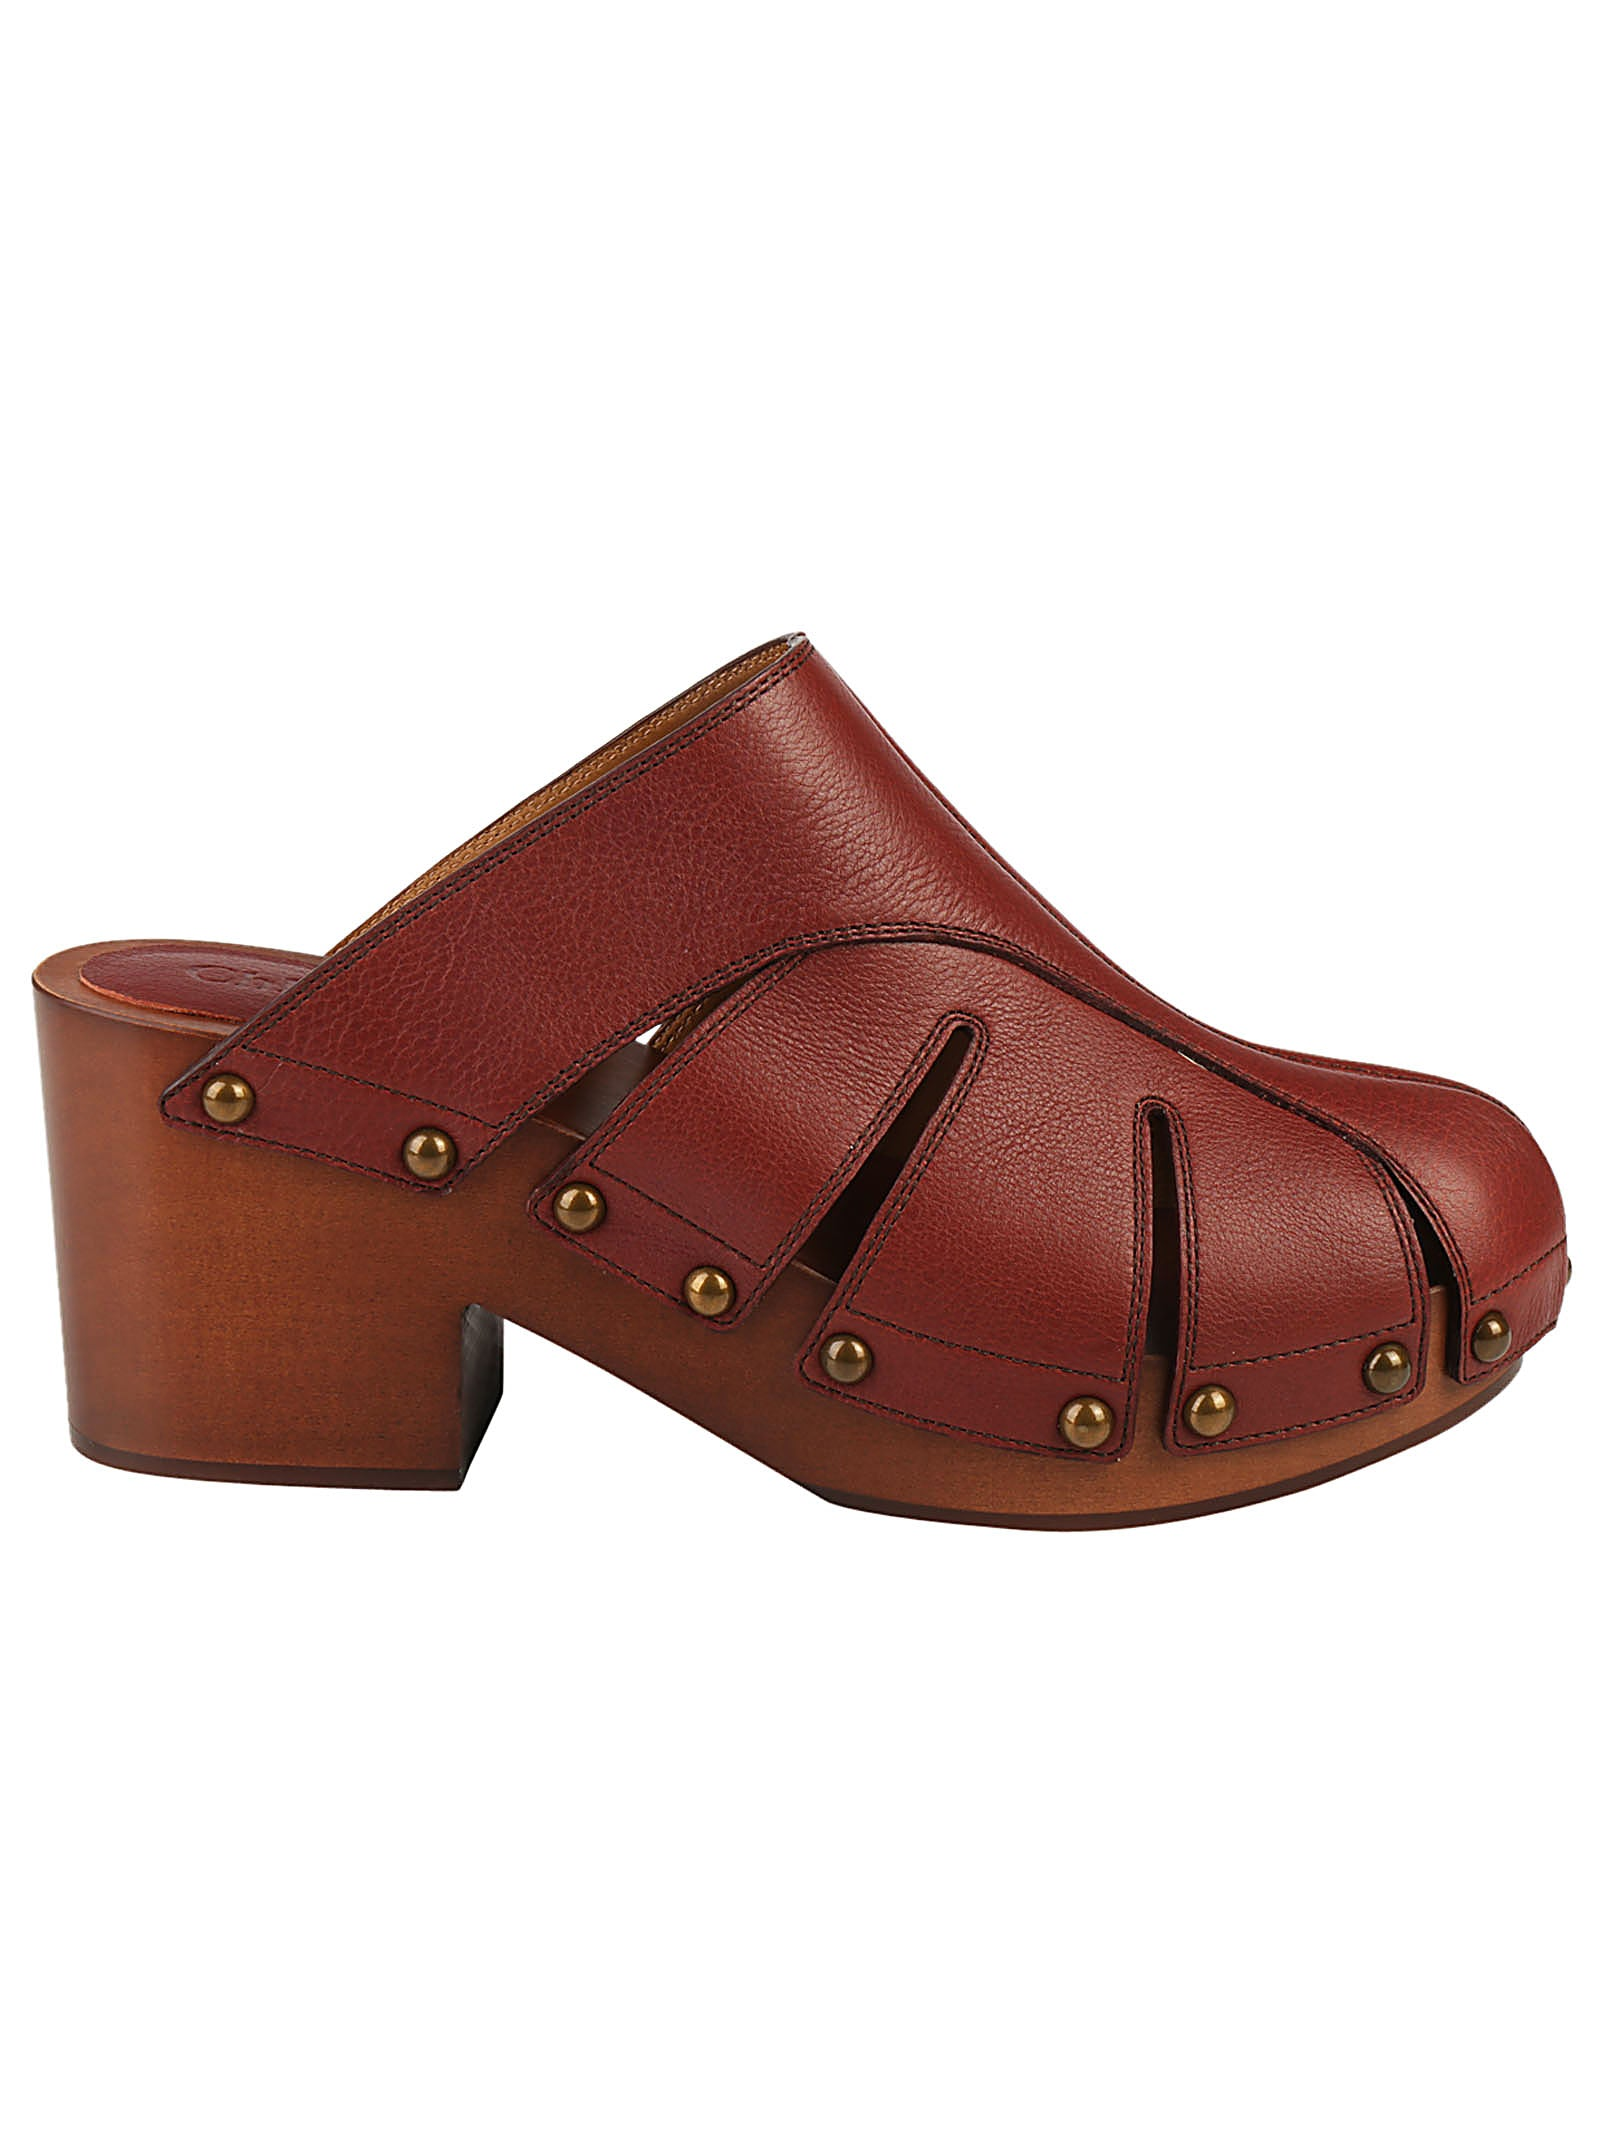 CHLOÉ LEATHER WOODEN SOLE SANDALS